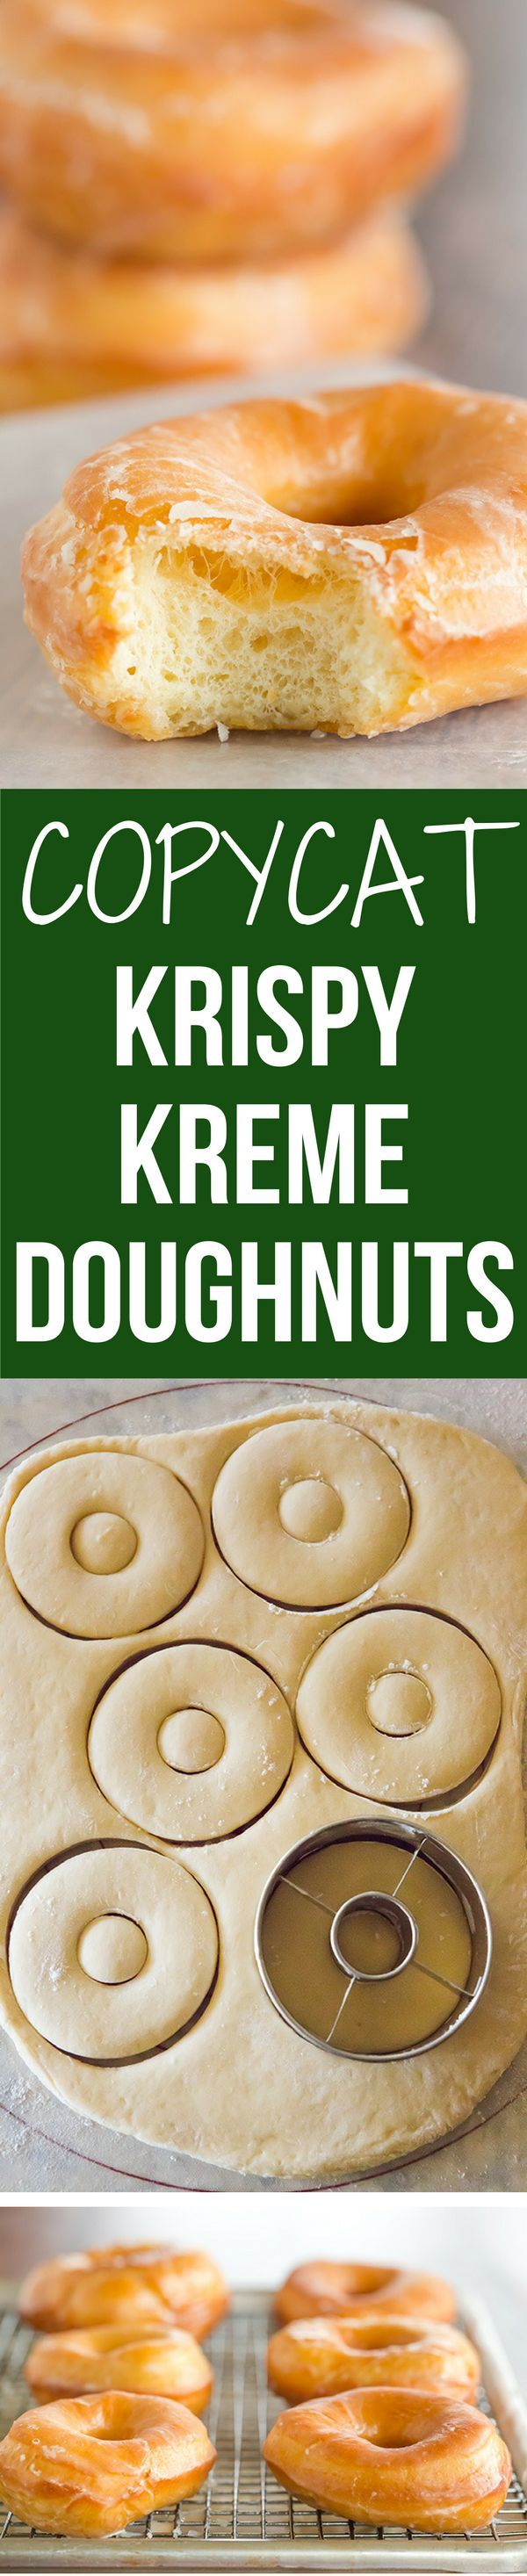 A copycat recipe for Krispy Kreme doughnuts - they're light, airy and covered in…